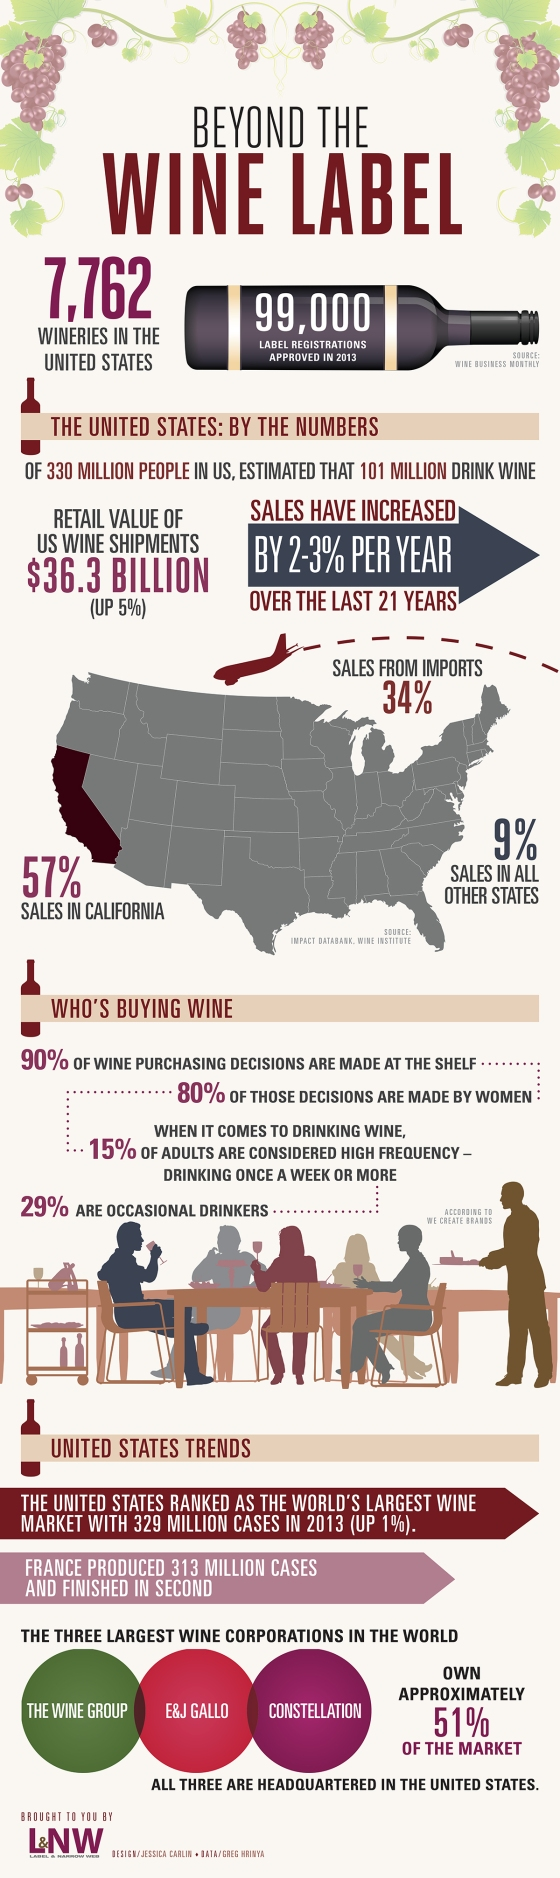 Label and Narrow Web - Beyond the Wine Label Infographic